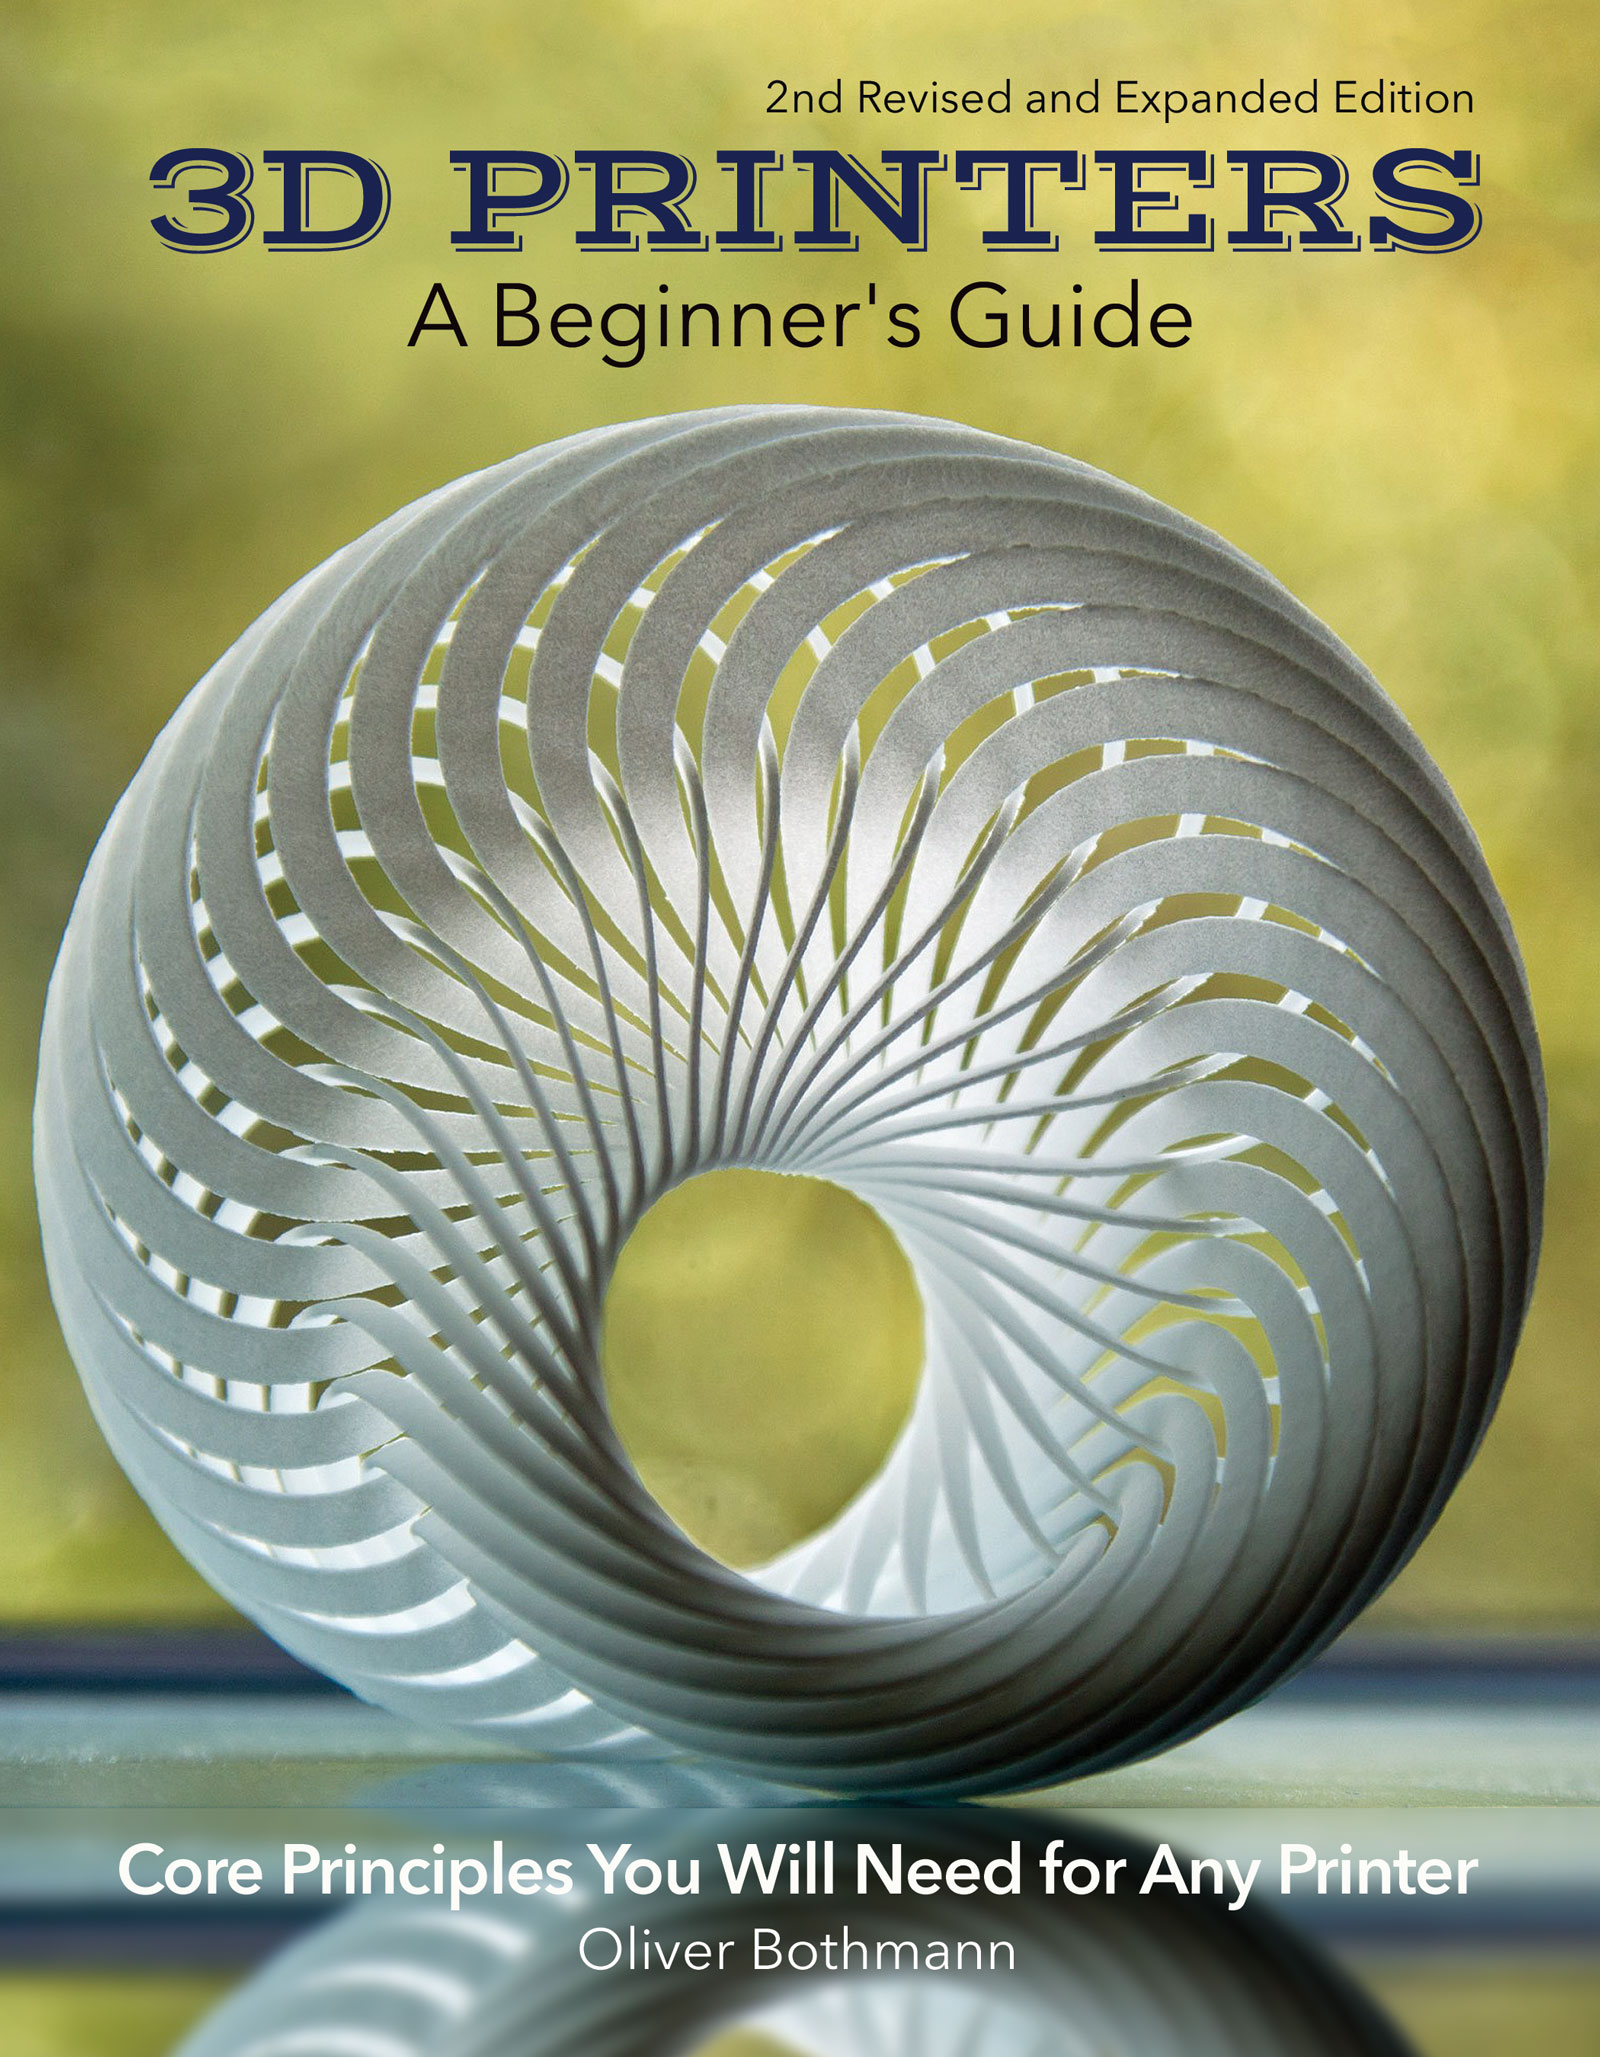 3D Printers: A Beginner's Guide, 2nd Revised and Expanded Edition